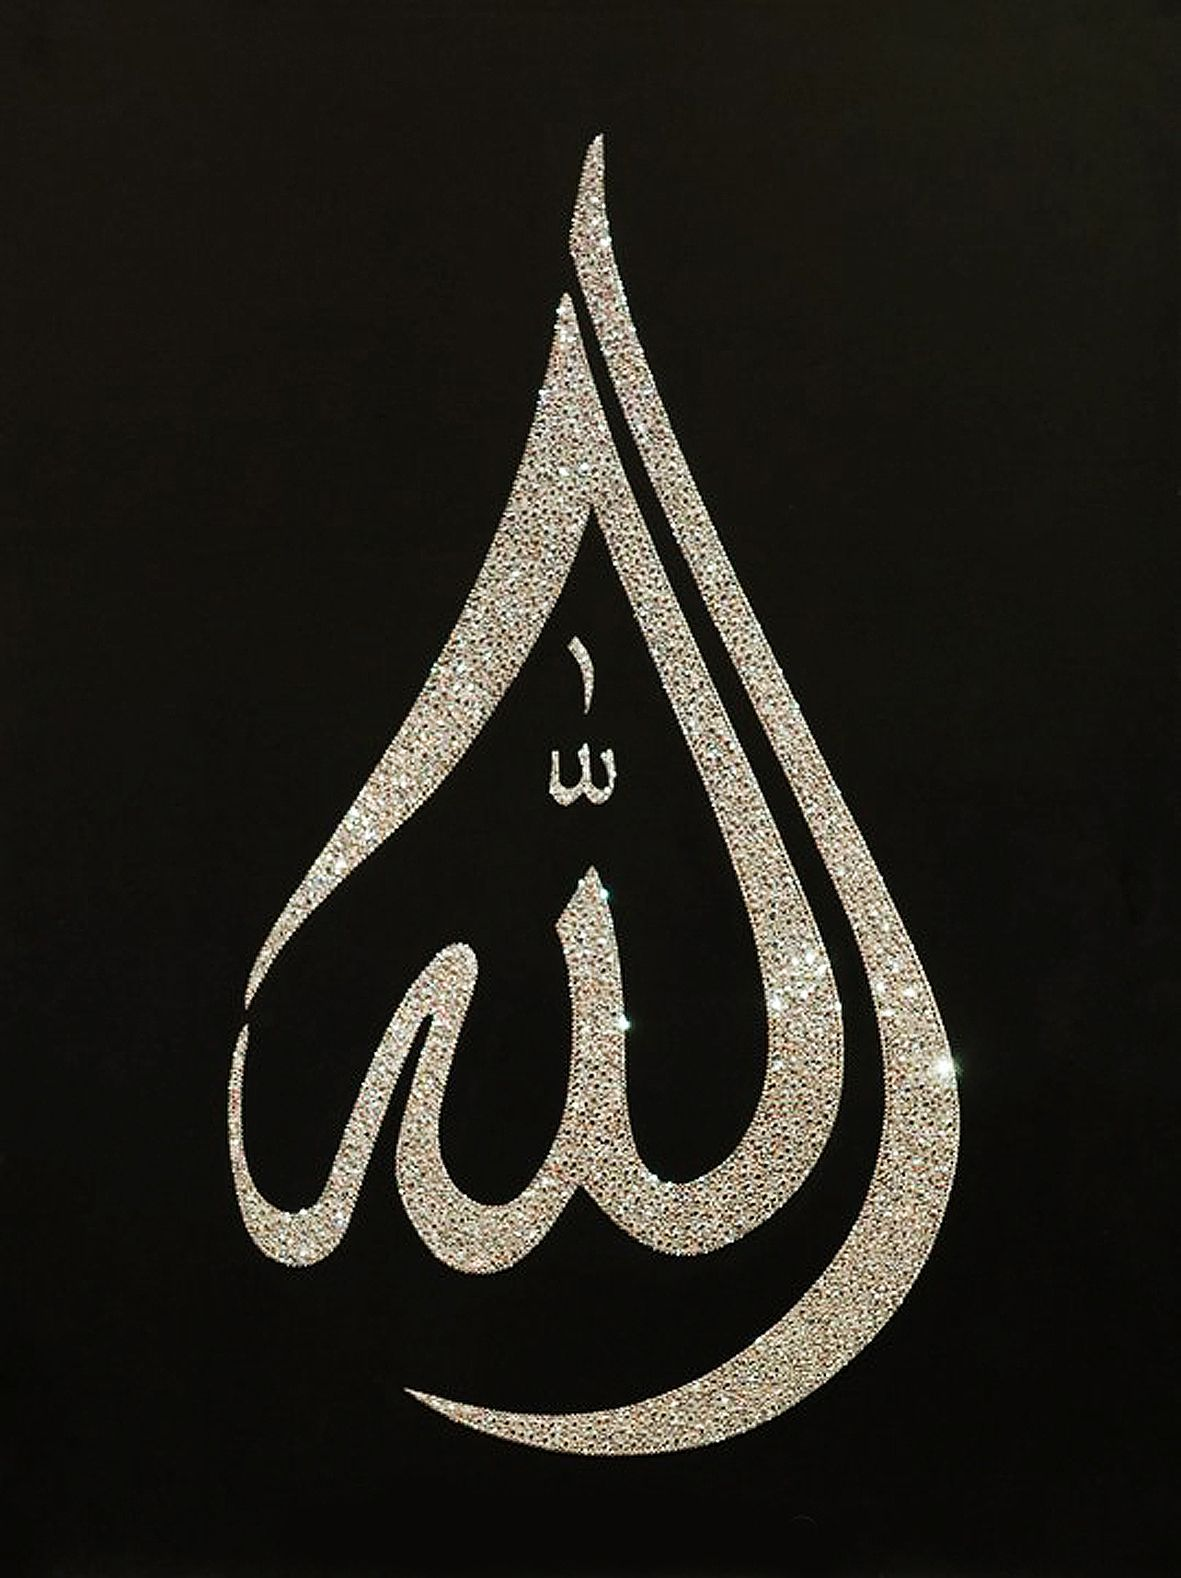 I am Muslim (this means Allah or God in Arabic calligraphy